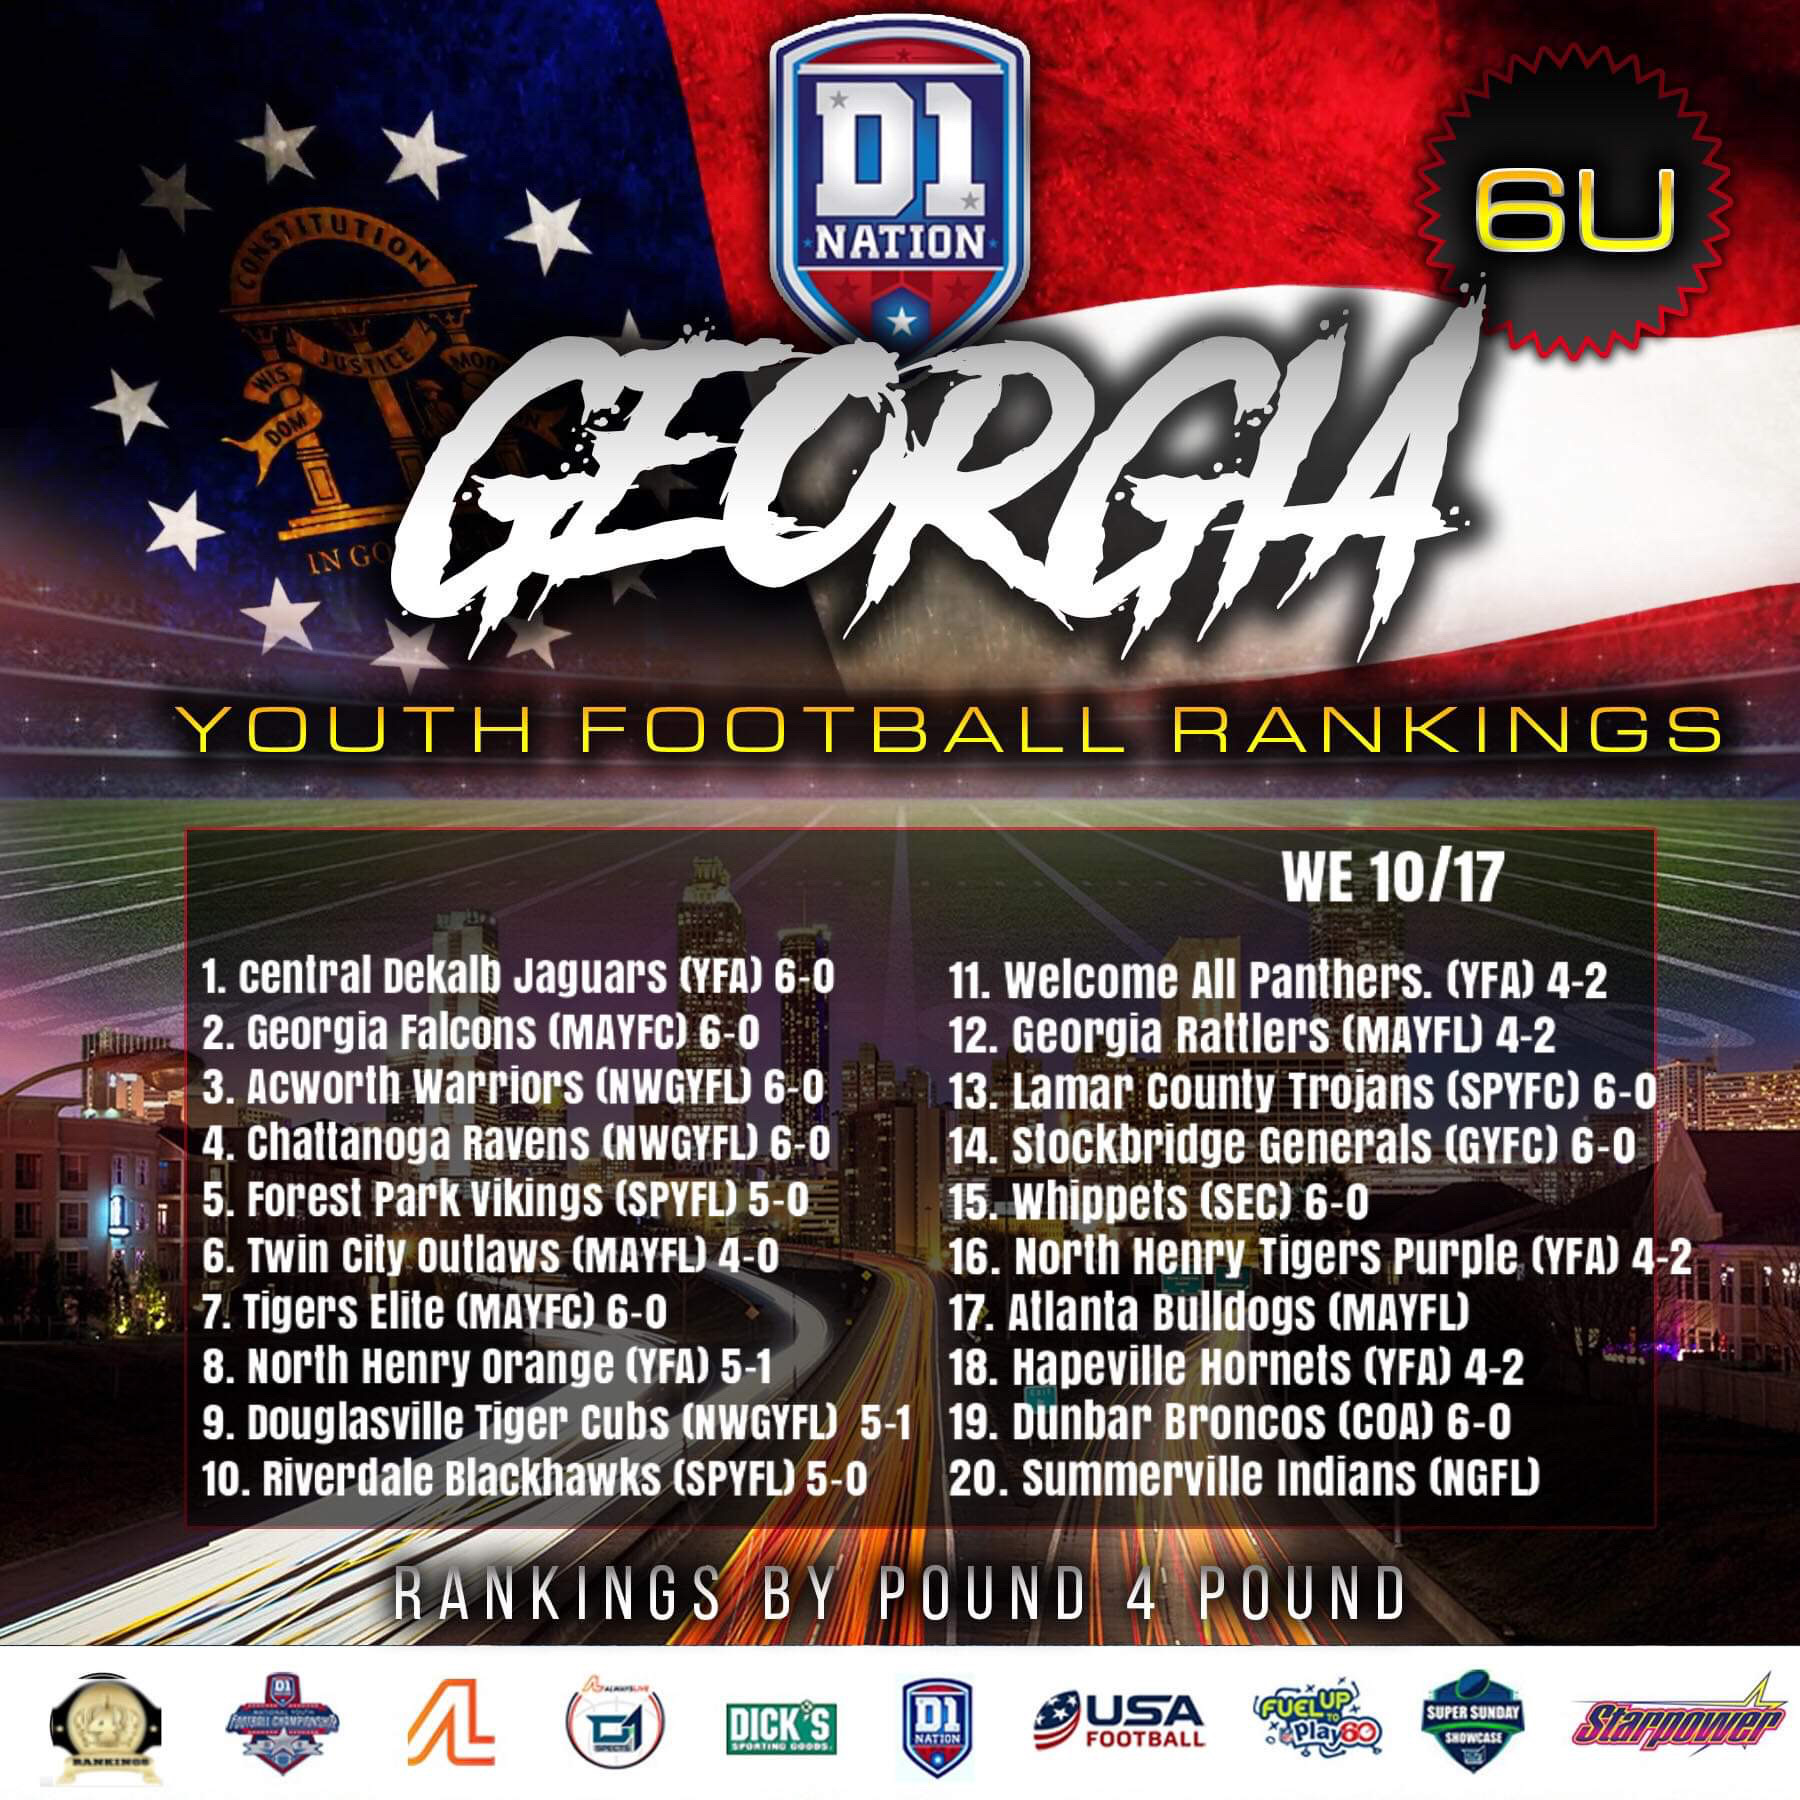 Update 10/21/2019: Georgia Youth Football Rankings – 6U